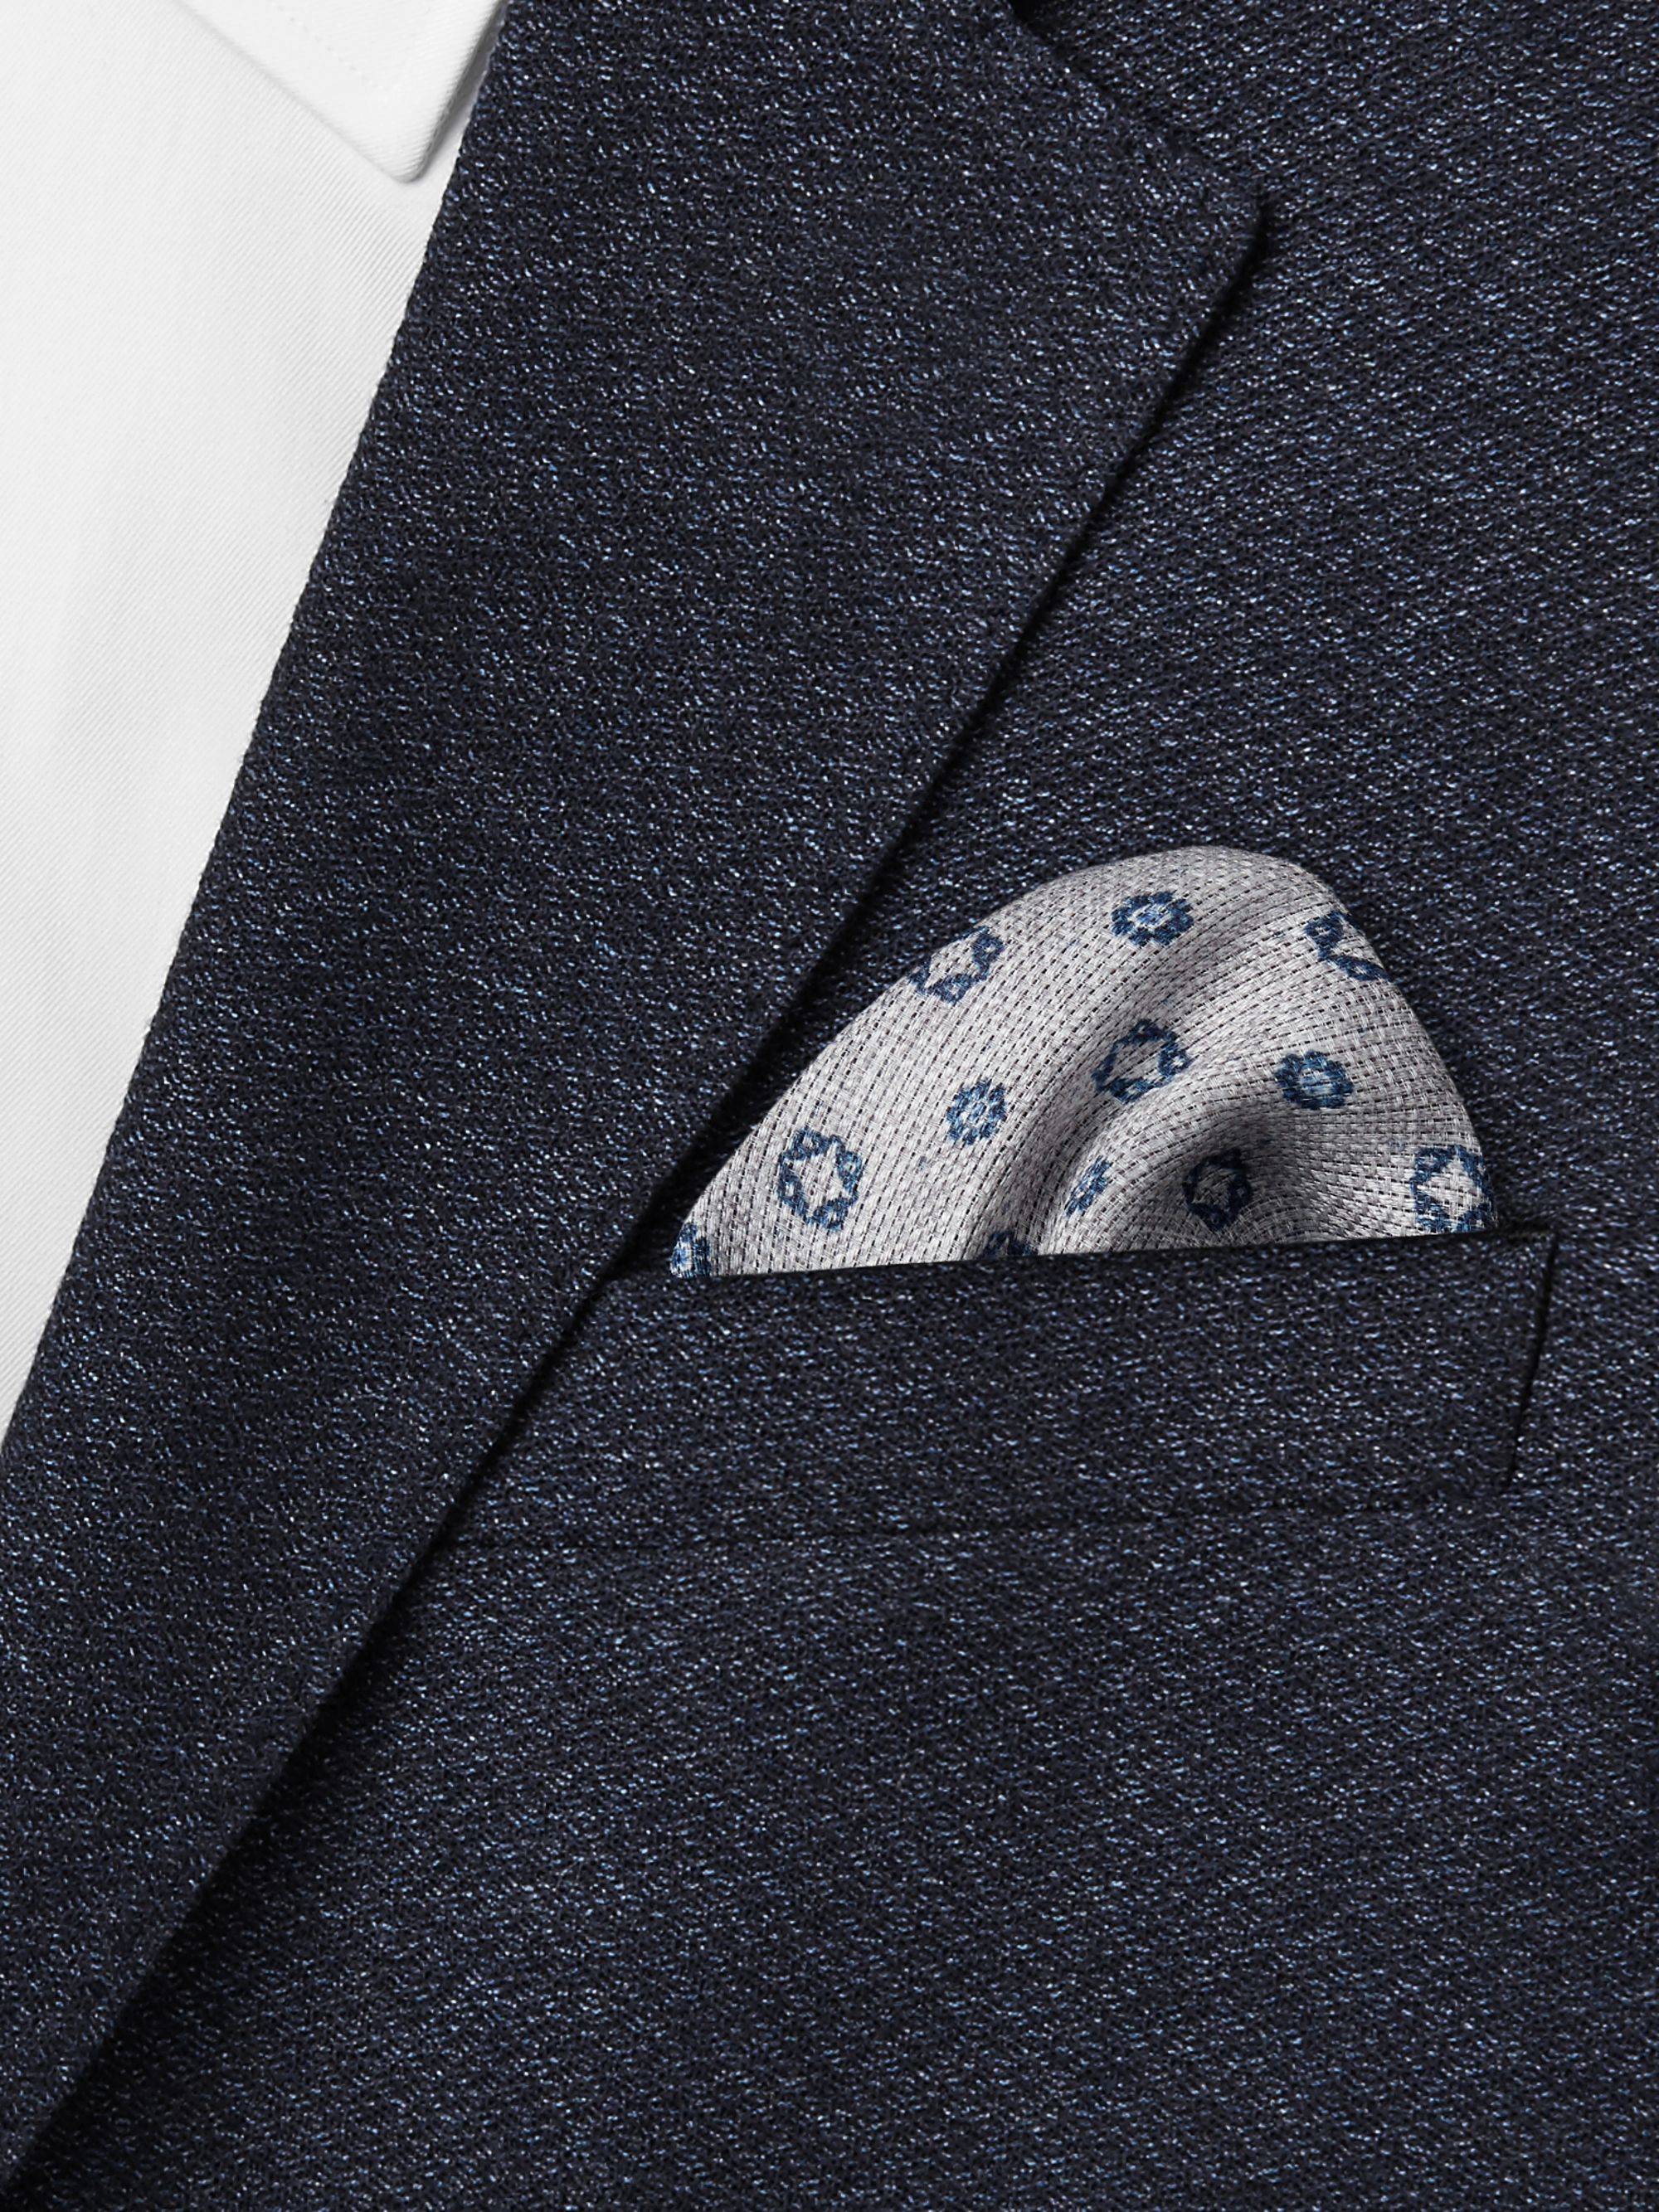 Brunello Cucinelli Printed Mélange Linen and Cotton-Blend Pocket Square